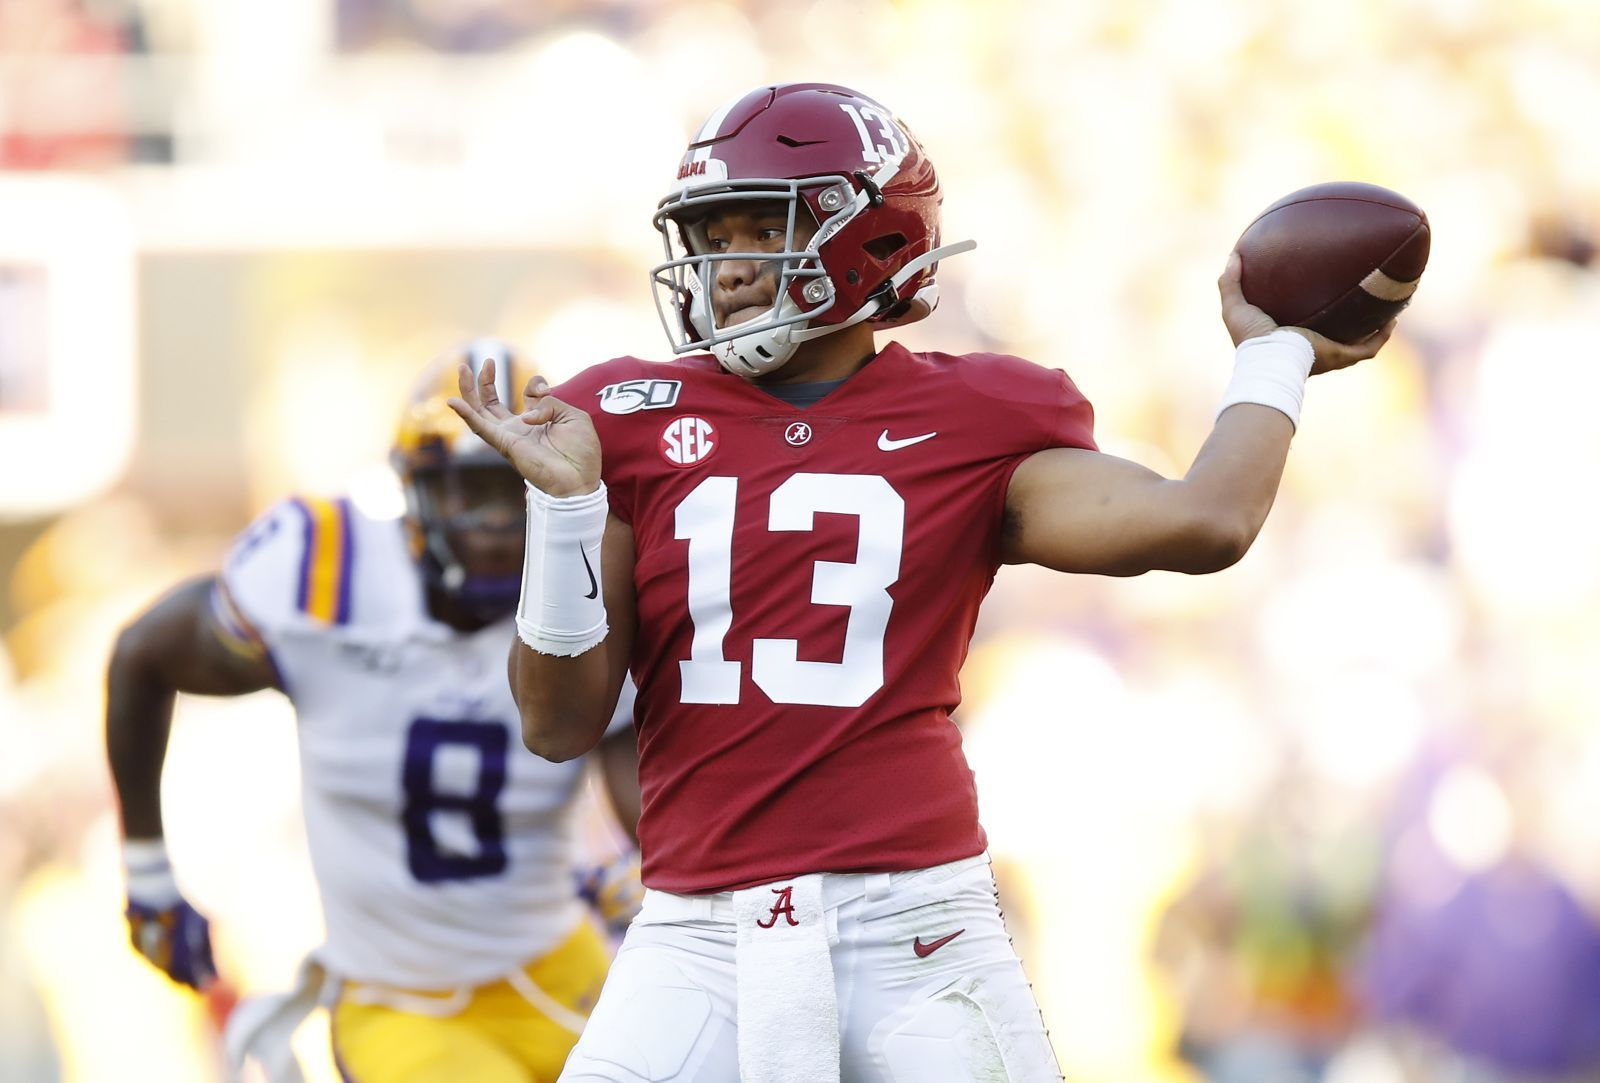 Miami Dolphins Must Draft Tua Tagovailoa At All Costs National Football League News Tua Tagovailoa Said Yes To The 2020 Nfl Draft And In 2020 Nfl Draft Nfl Nfl News